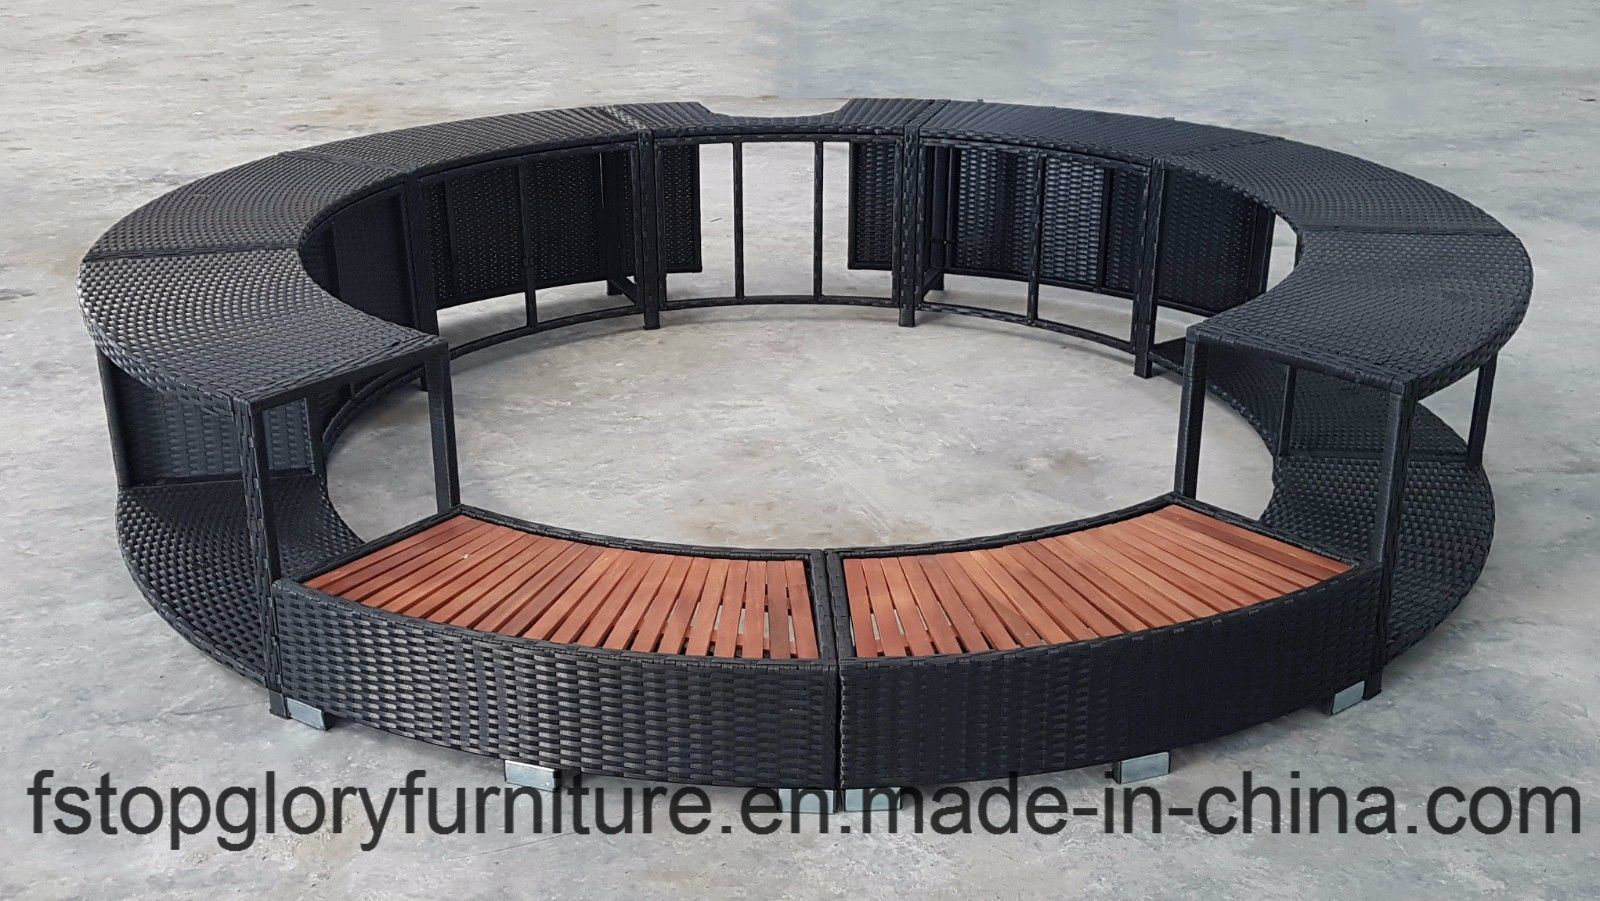 Outdoor Jacuzzi Hot Tub Surround For A Lazy Paris Round Soft